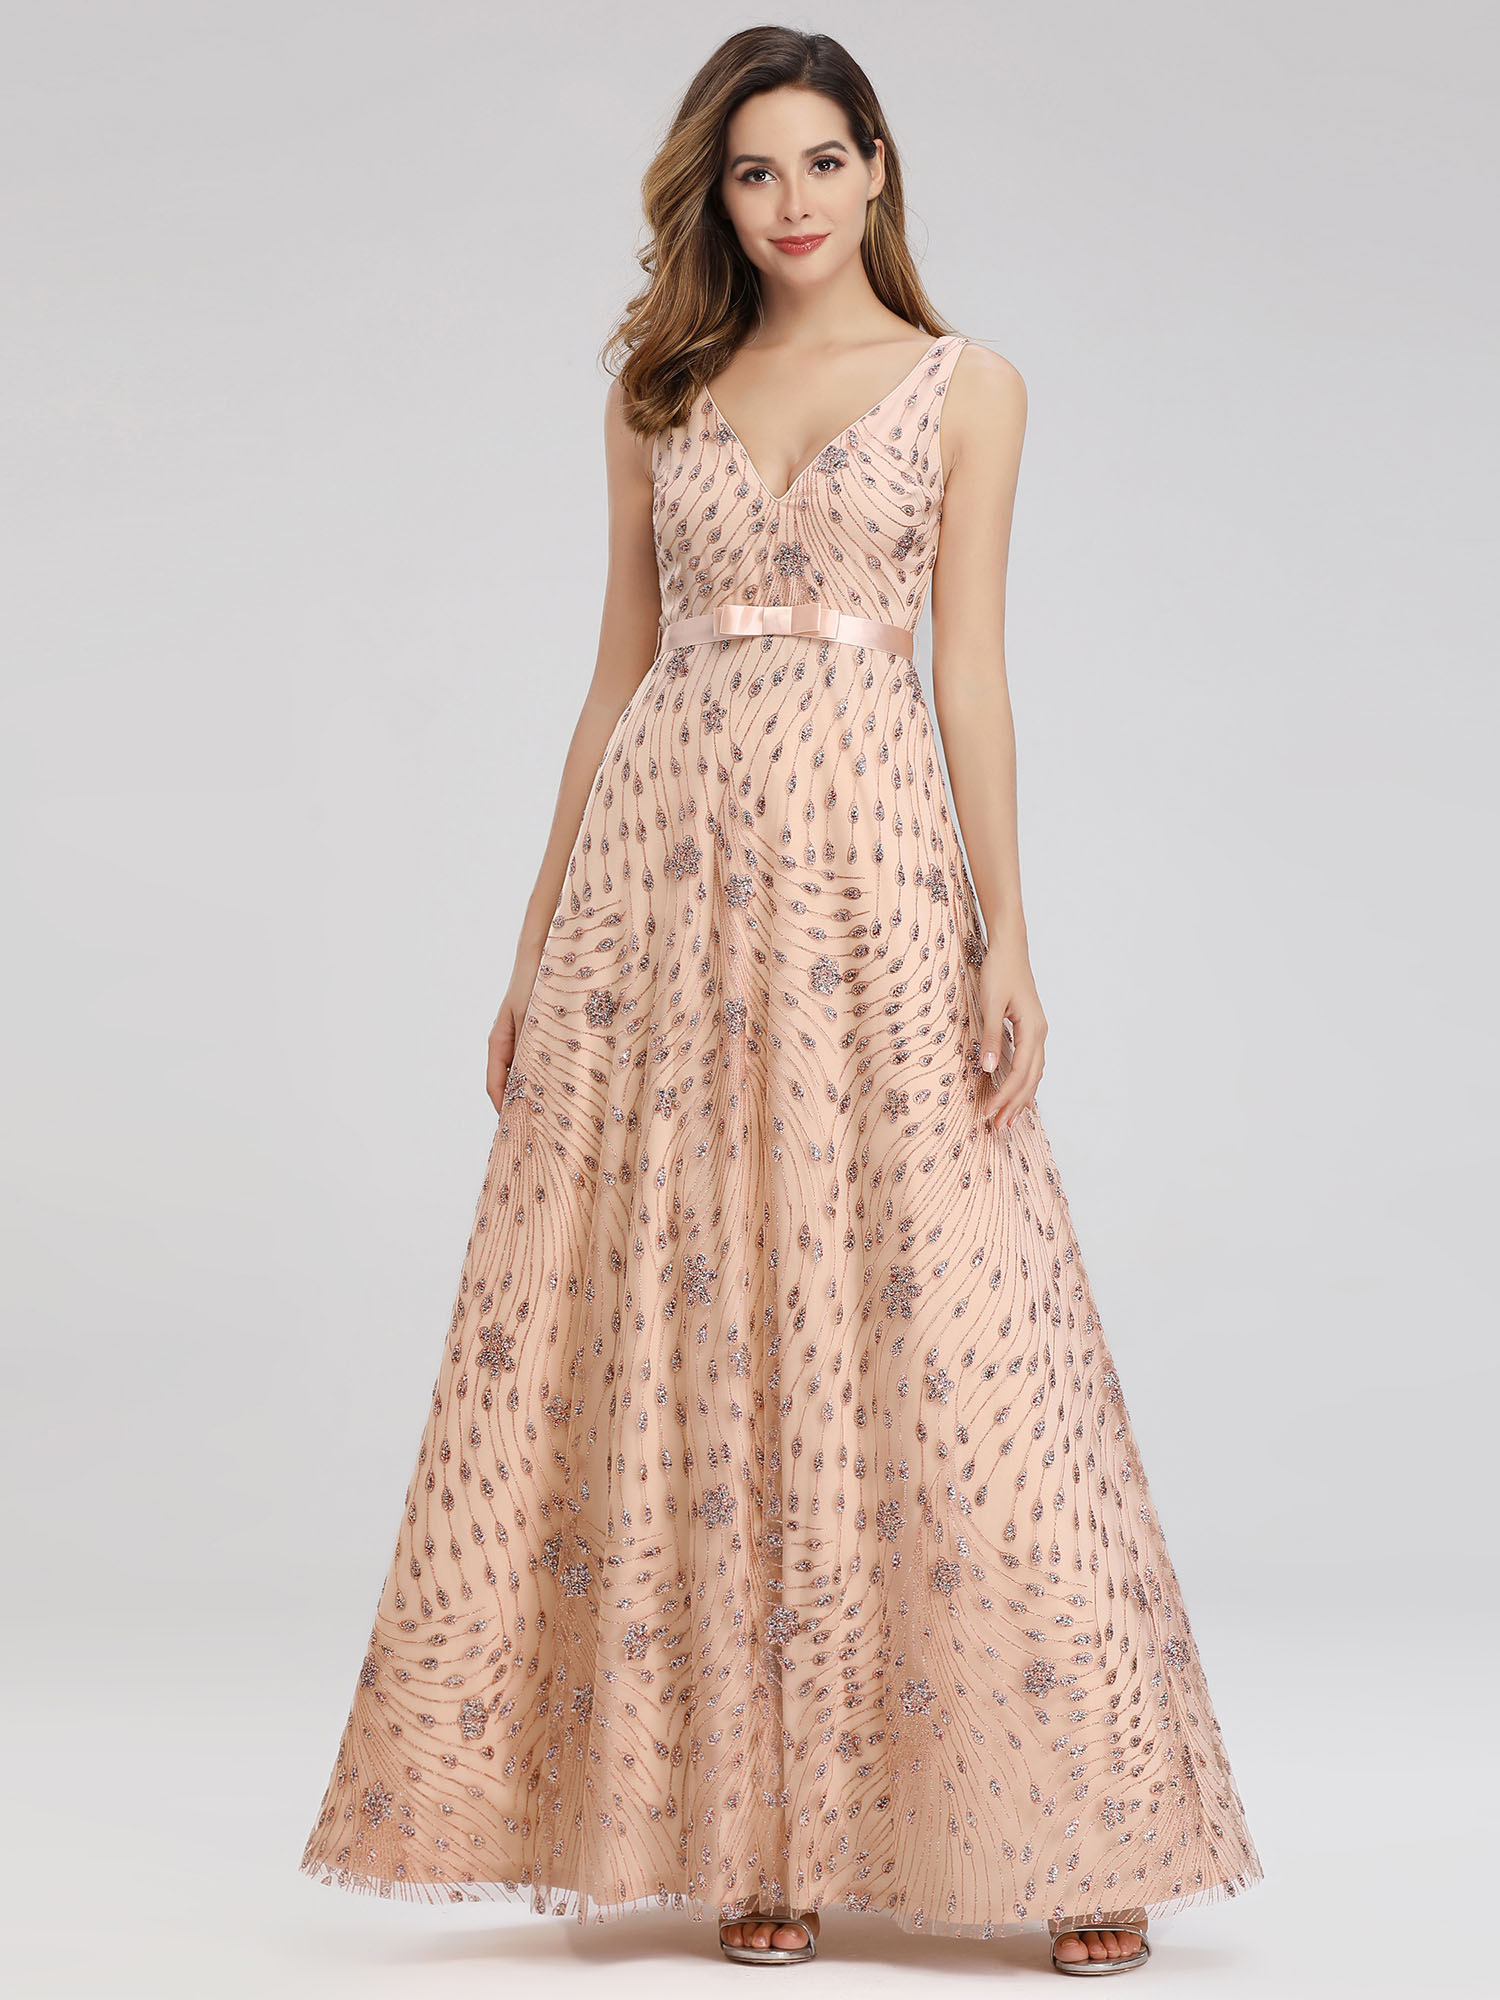 Ever-Pretty-US-Glitter-Evening-Dresses-A-Line-Floral-V-Neck-Party-Cocktail-Gowns thumbnail 11